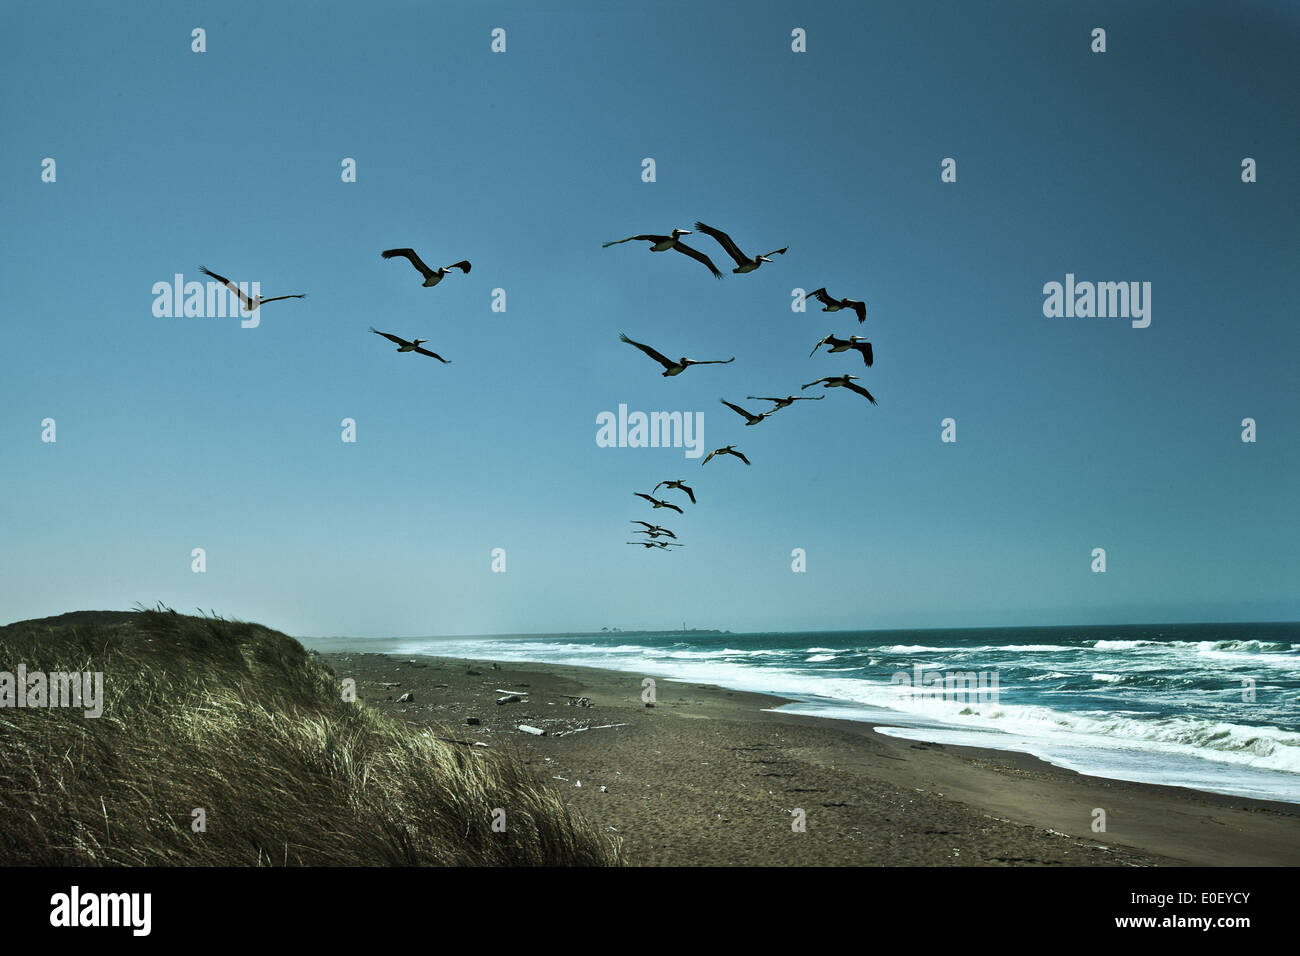 Squadron of Pelicans in flight over beach - Stock Image